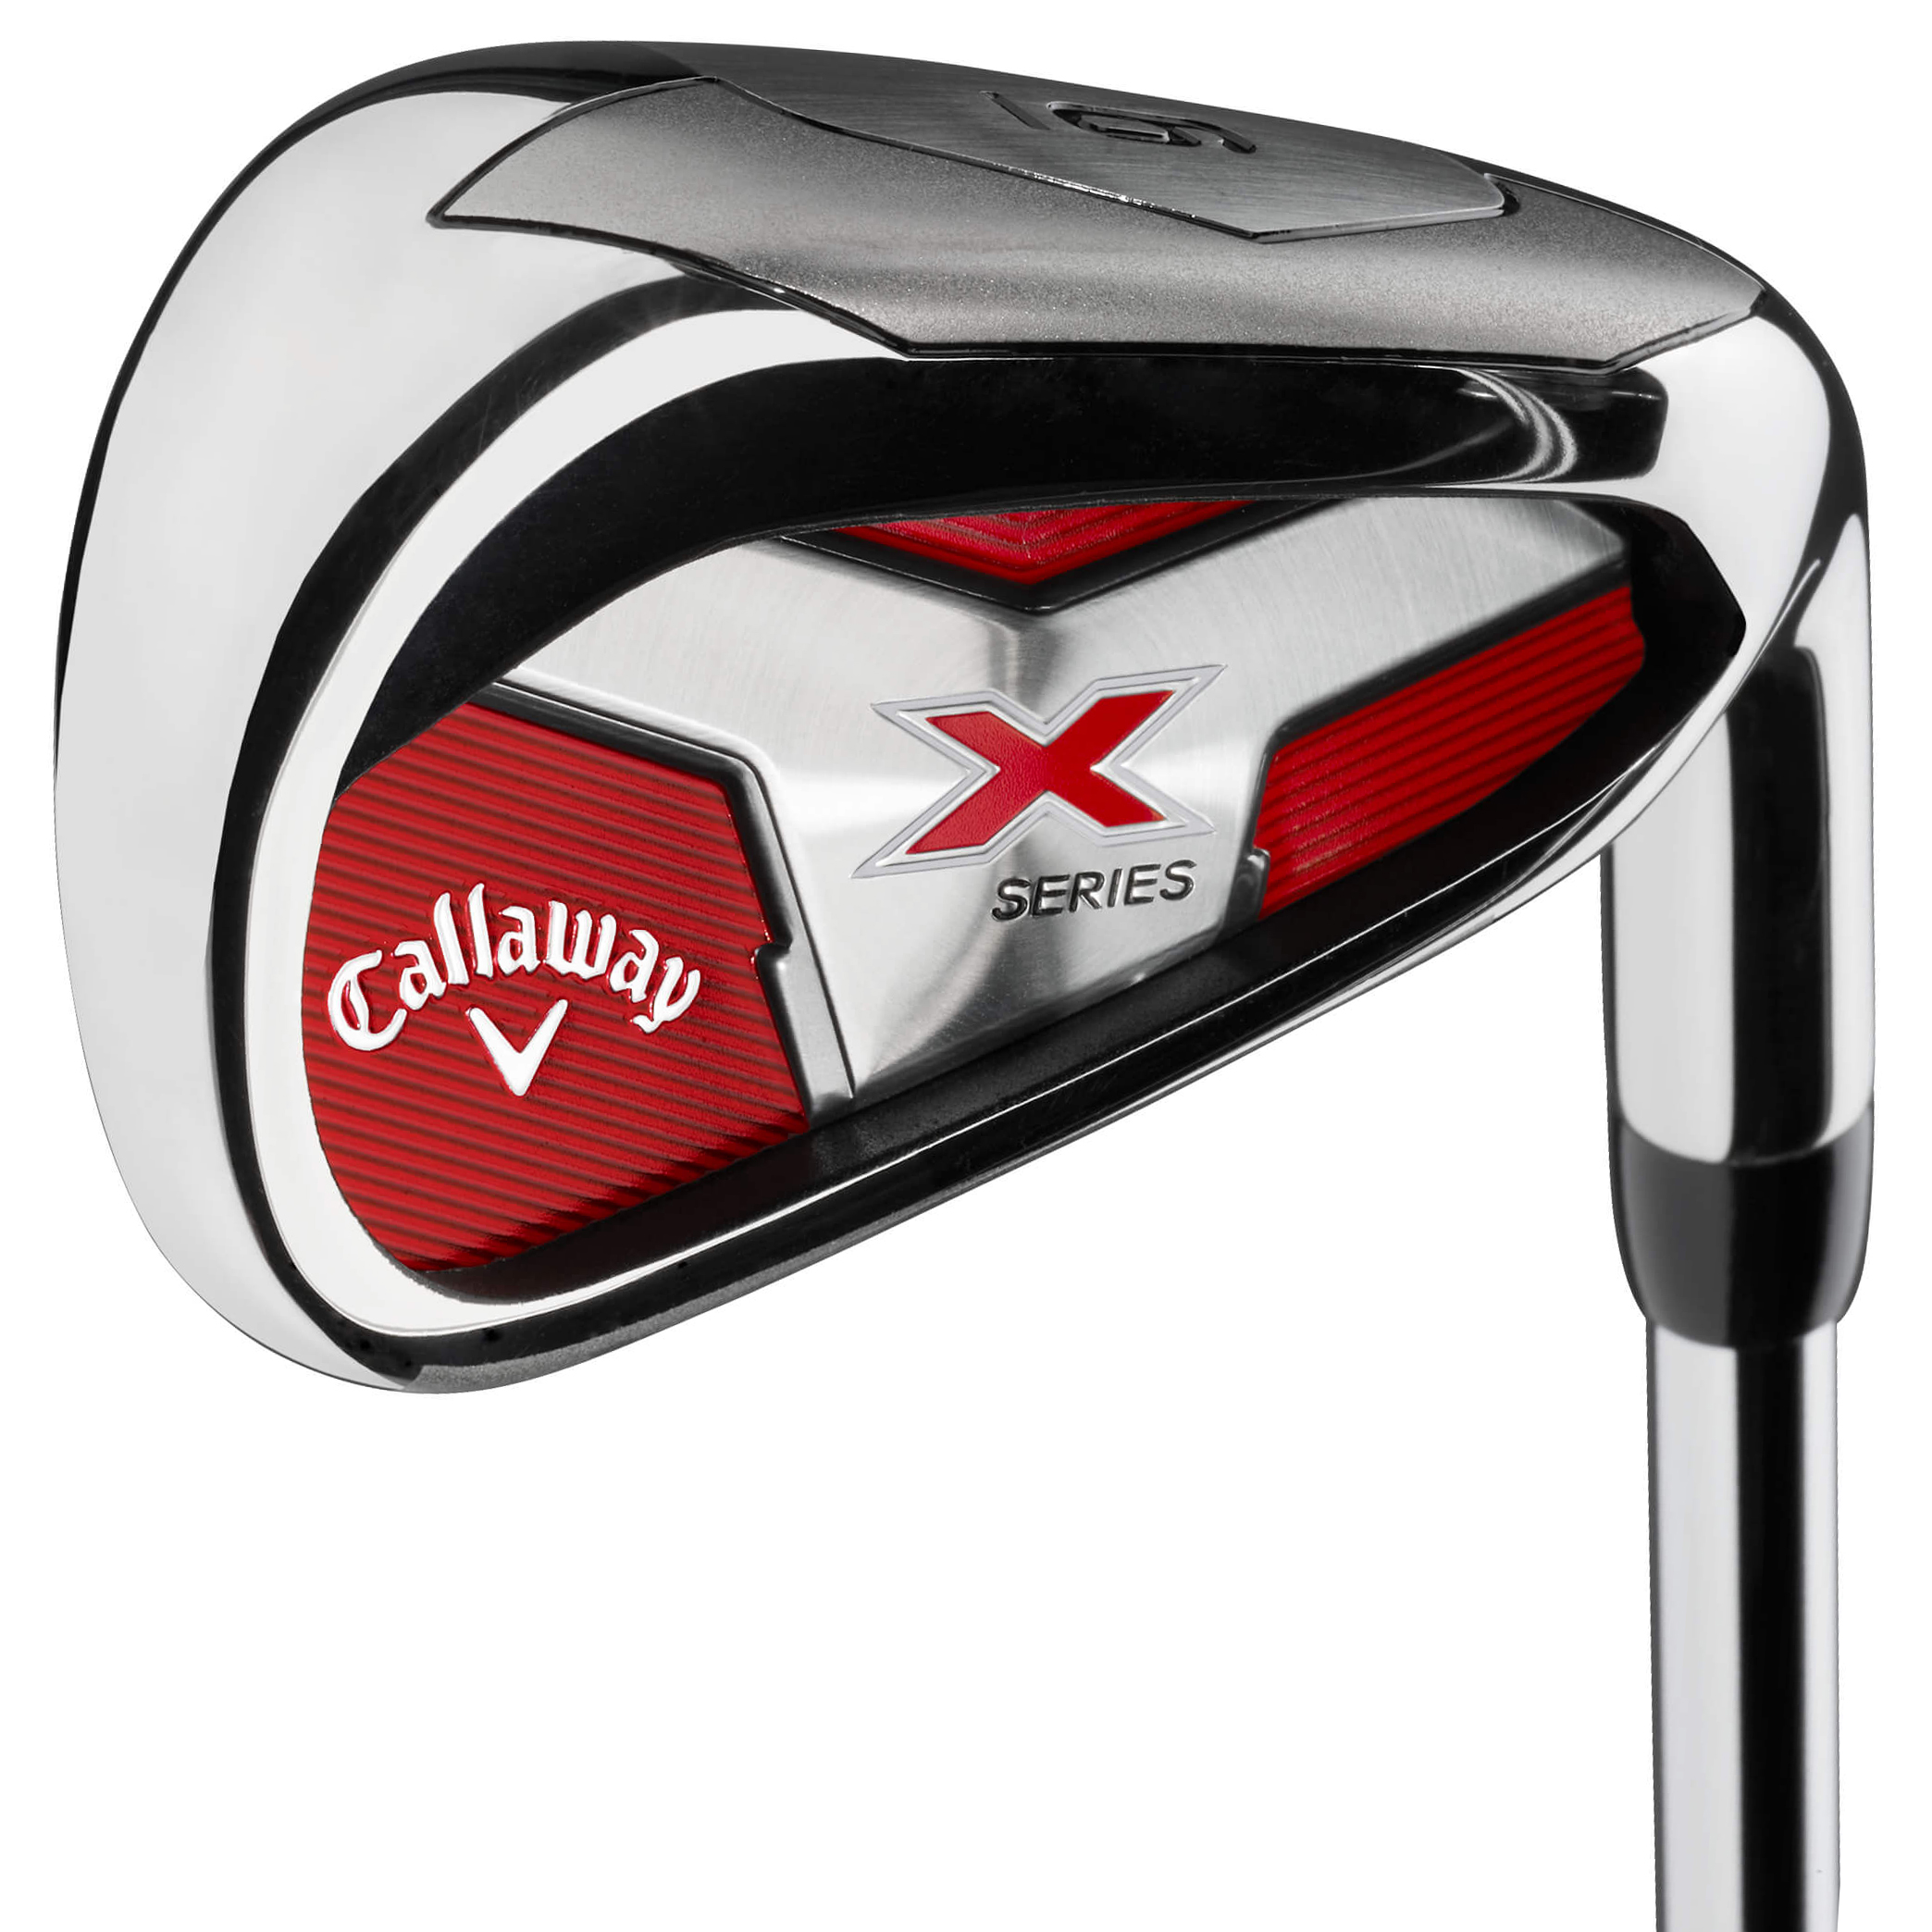 """The Callaway X Series 18 Irons feature: Set configuration: 4-PW, AW. A deep undercut cavity located behind the face of these irons combined with perimeter weighting for unmatched forgiveness across the entire face of the club. Wider sole for improved turf interaction and less digging at impact.X-Series 18 Irons are a game improvement iron designed to improve the scores of players with """"less than perfect"""" swings like yours."""